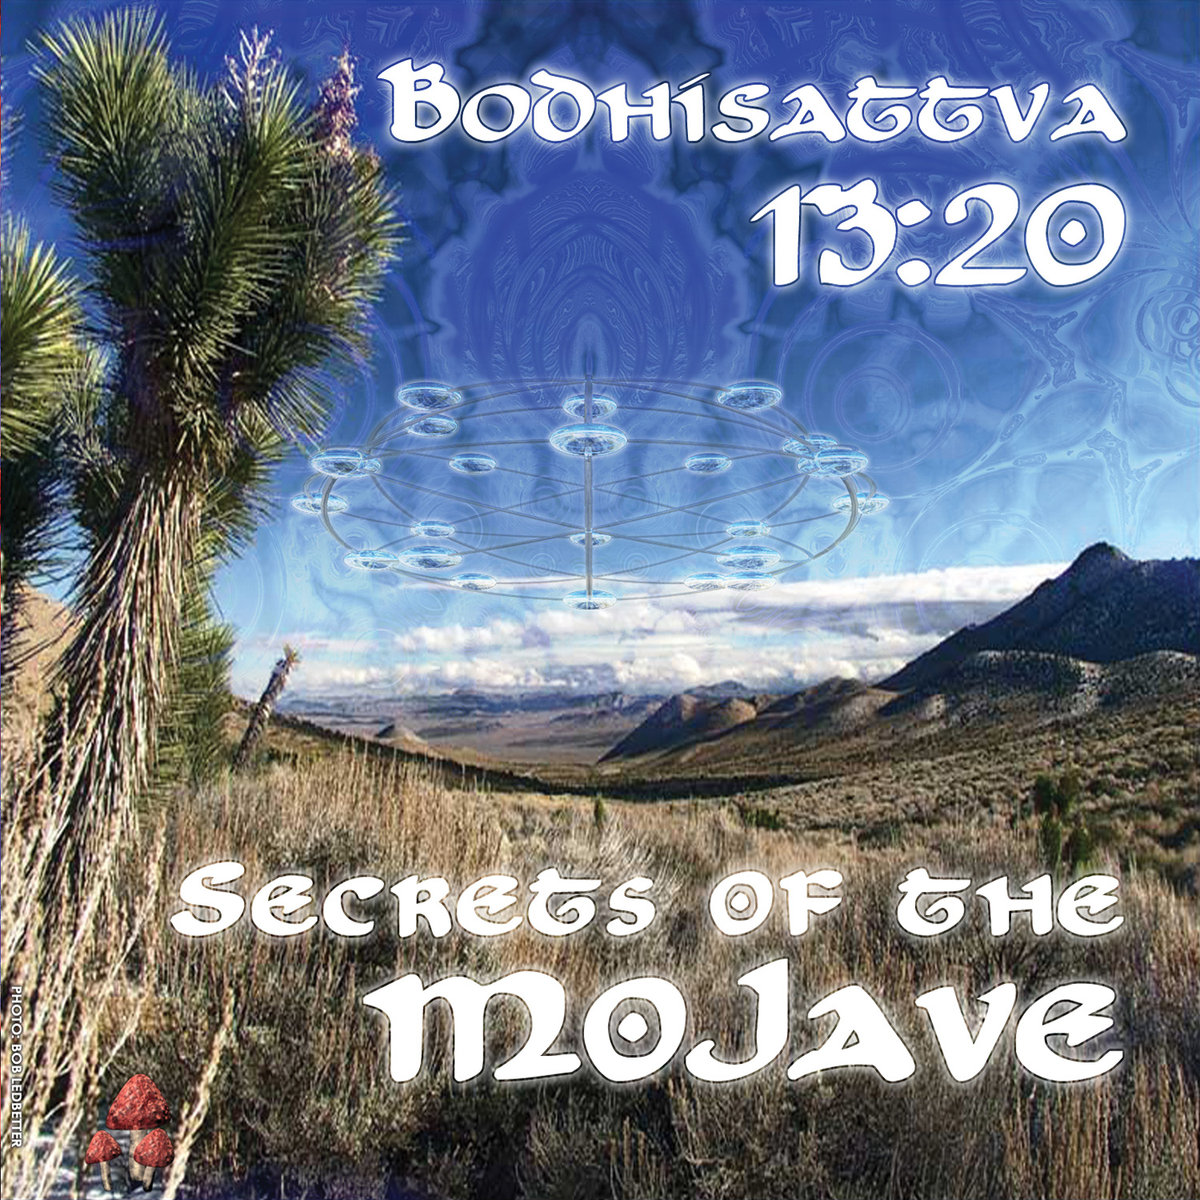 Arahat vs. Bodhisattva 13:20 - Pineal Erethism (Remix) @ 'Secrets of the Mojave' album (electronic, goa)